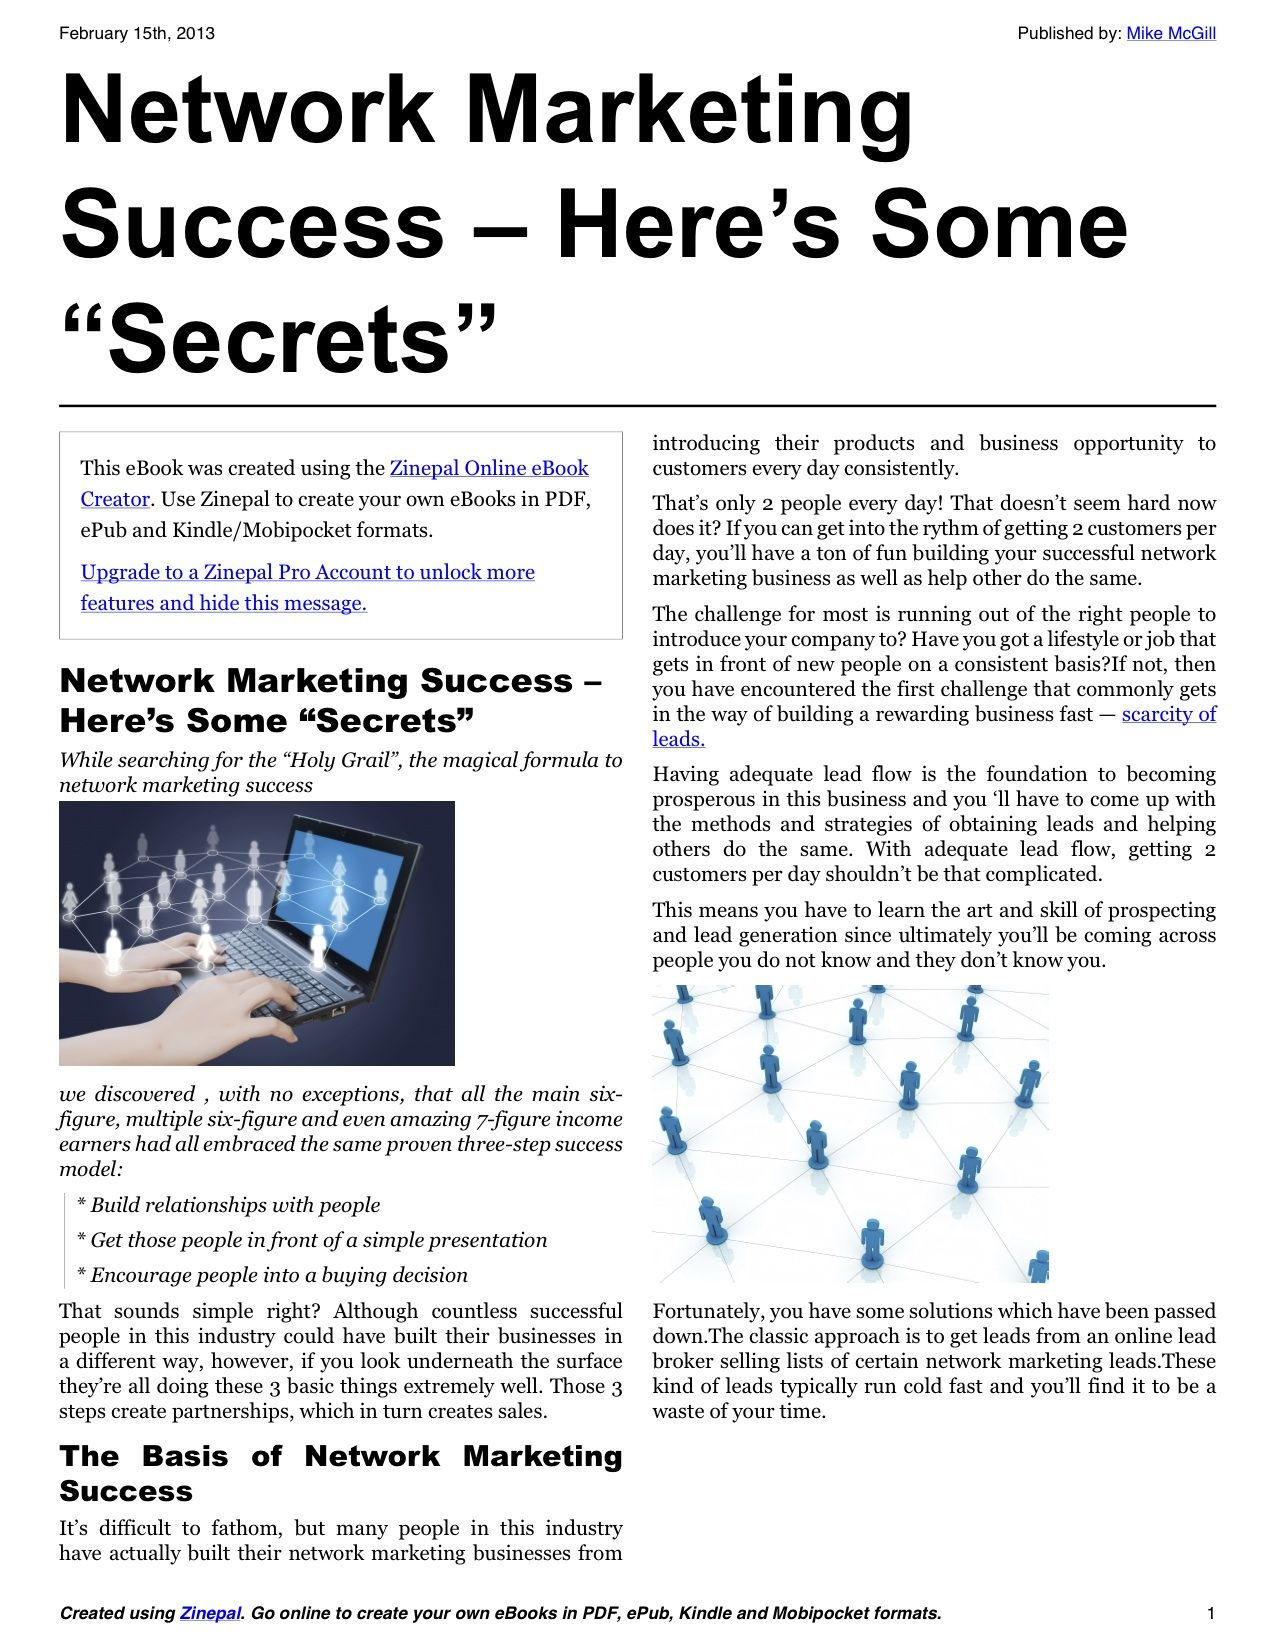 Network marketing success document sharing pinterest network marketing success malvernweather Image collections